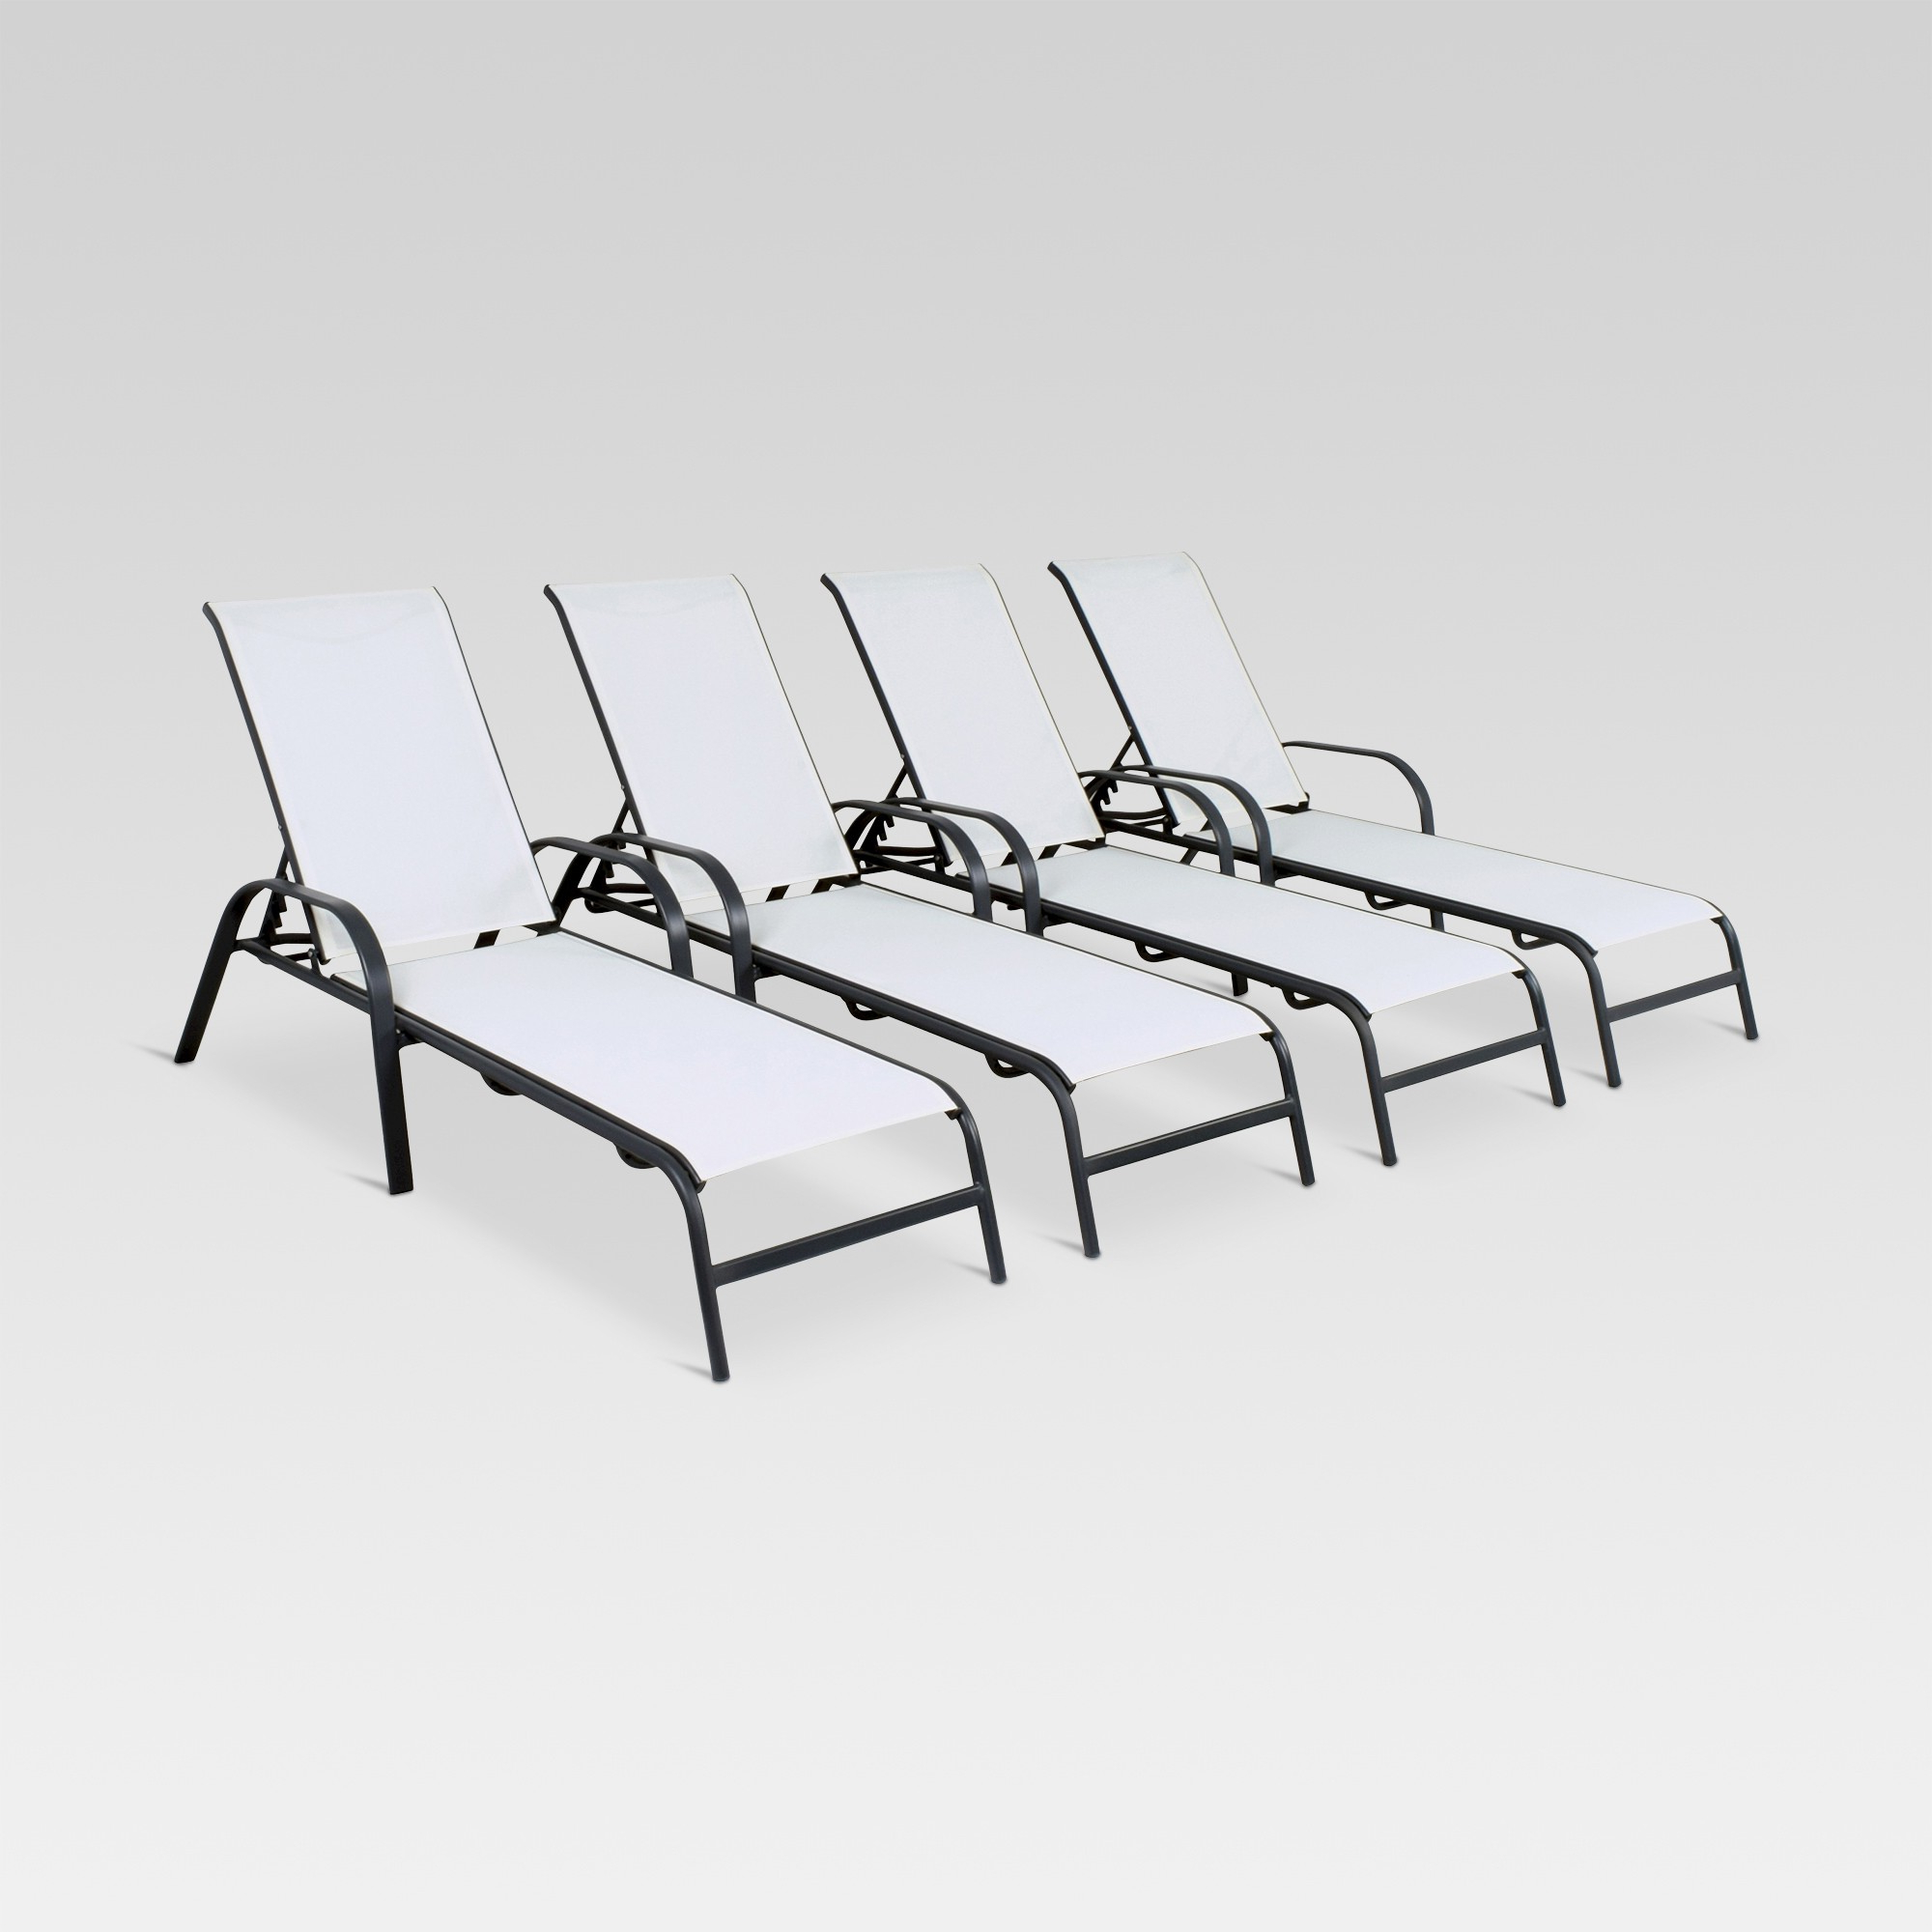 Antonio Sling Fabric Adjustable Outdoor Chaise Lounges Throughout Well Known 4Pk Stack Sling Patio Lounge Chair – Tan – Threshold (View 6 of 25)